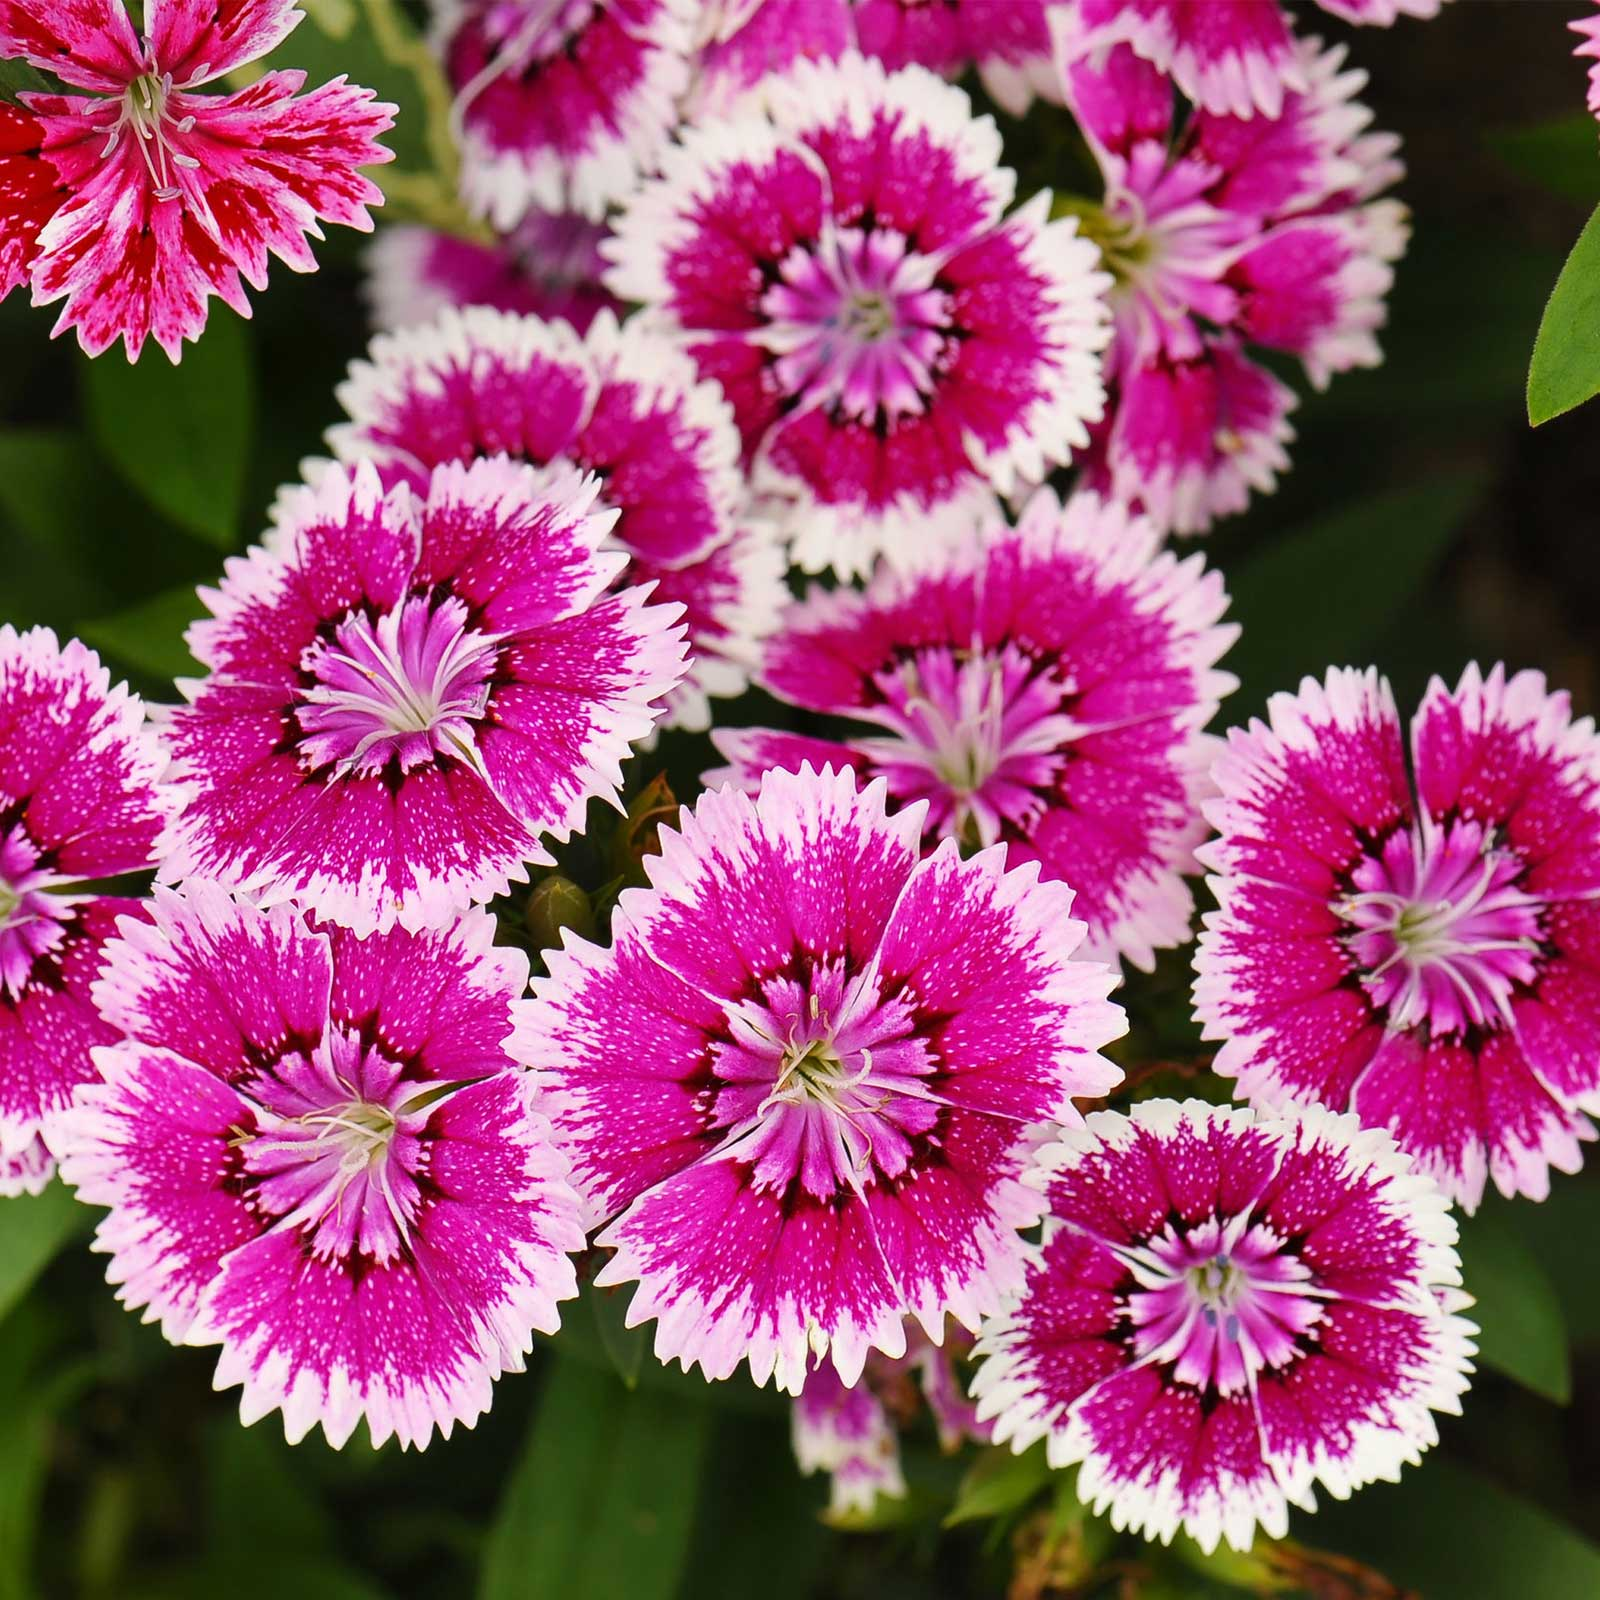 Dianthus Floral Lace Series Flower Seeds - Violet Picotee - 100 Seeds - Annual Flower Garden Seeds - Dianthus chinensis x barbatus